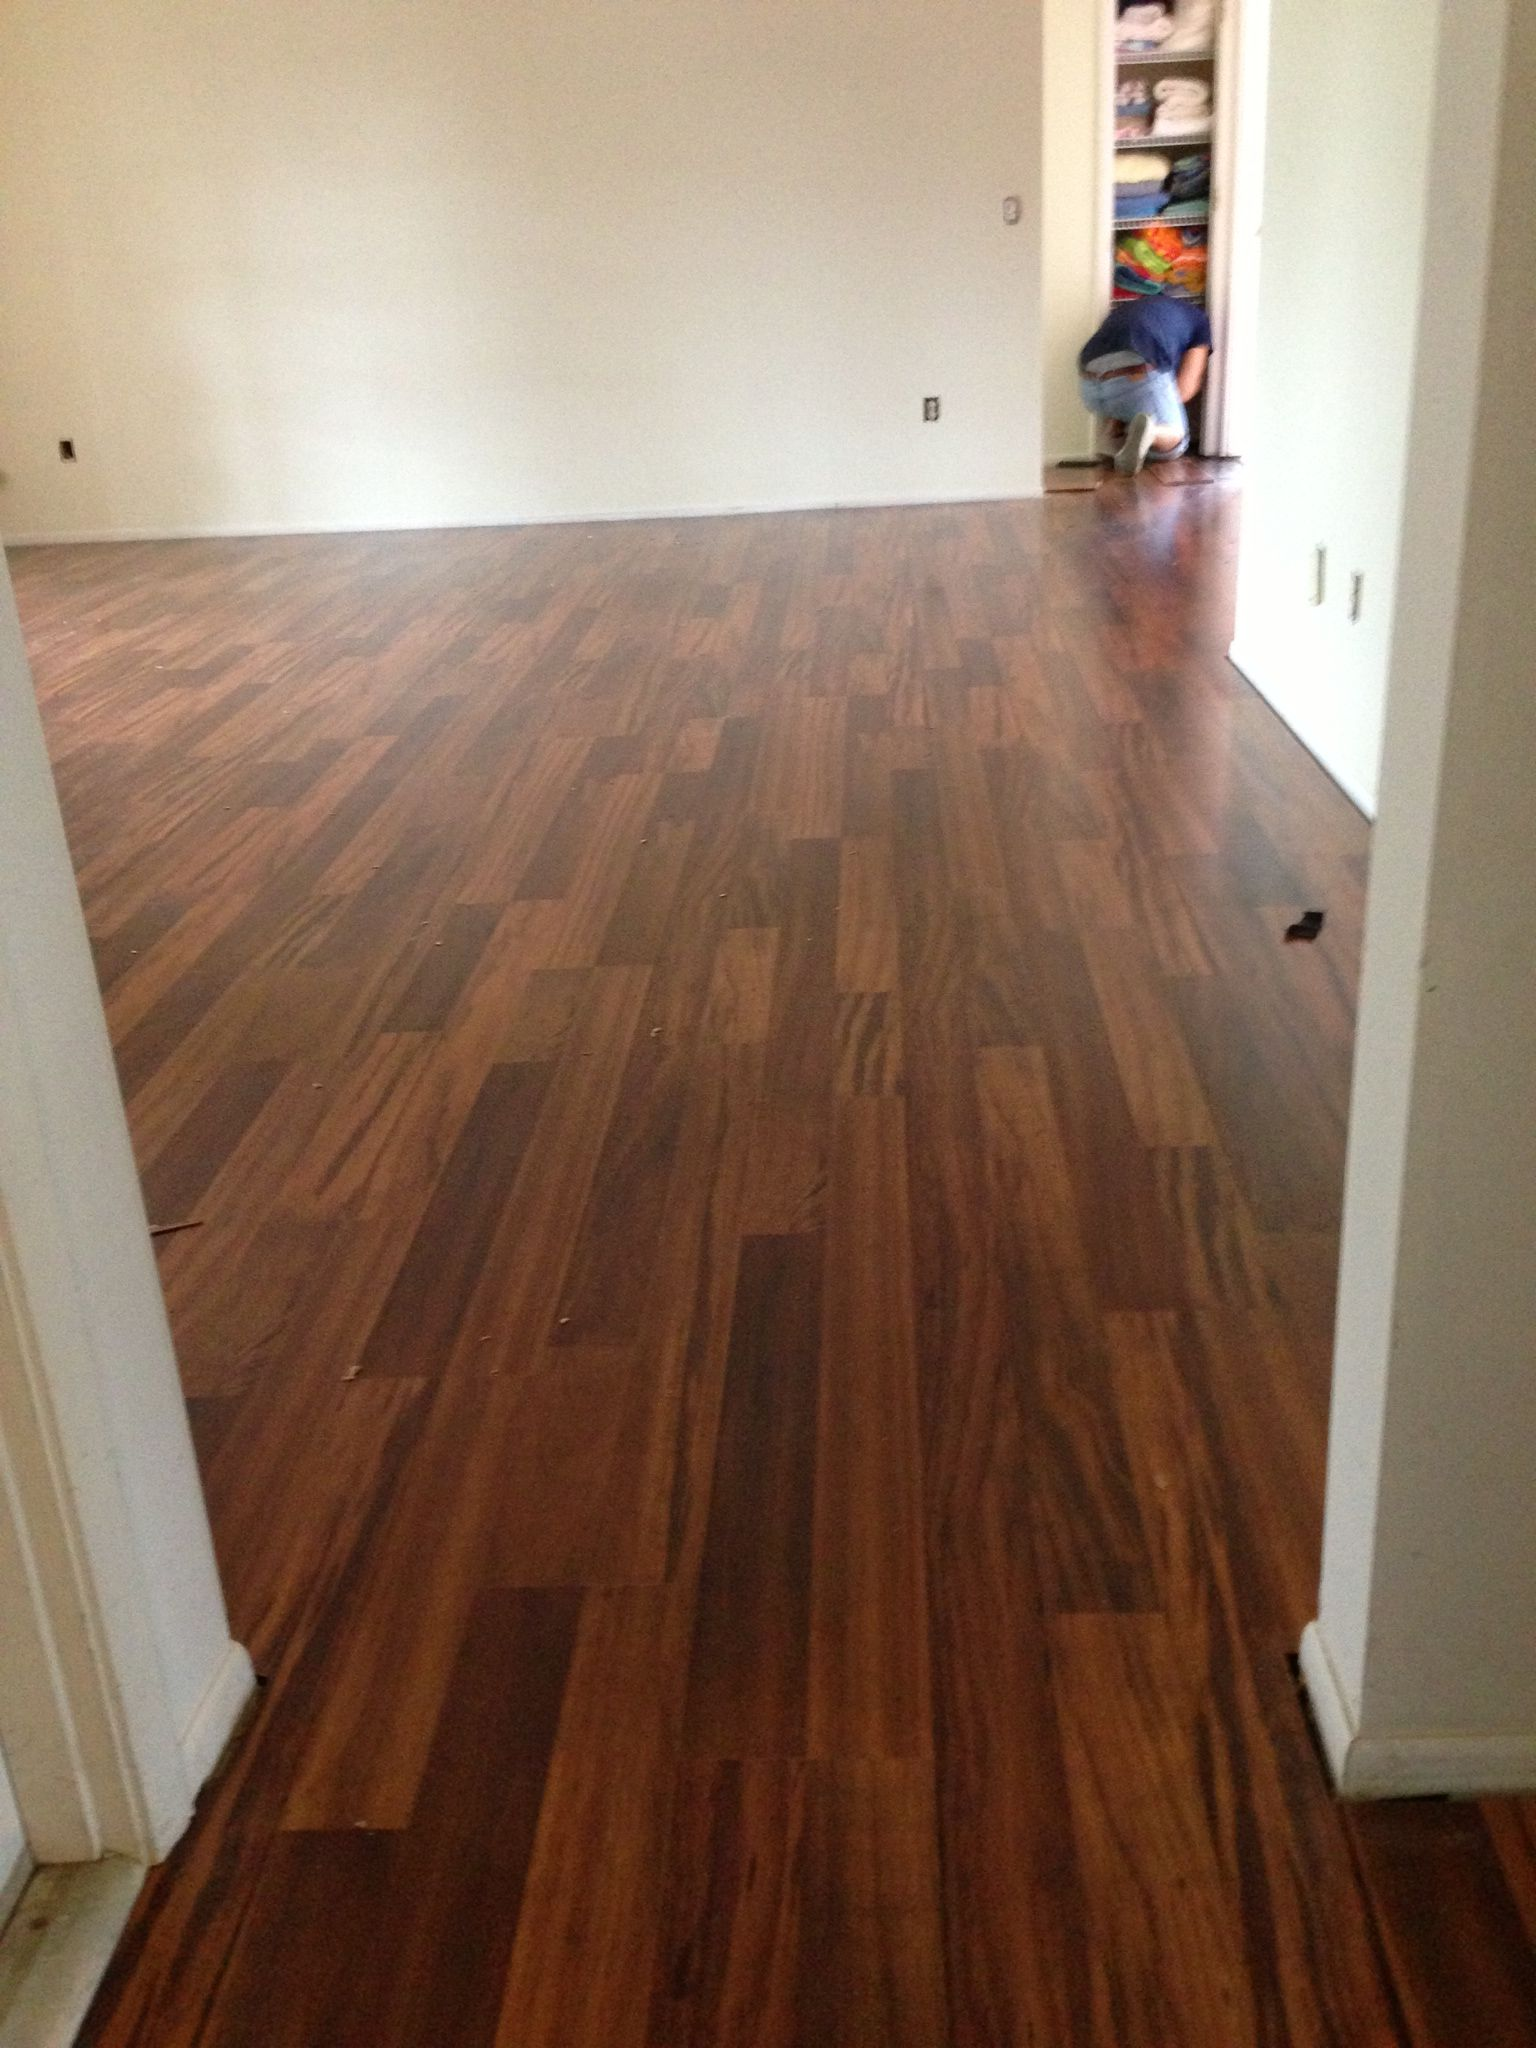 Calling them the best floors ever! Allen & Roth Tigerwood